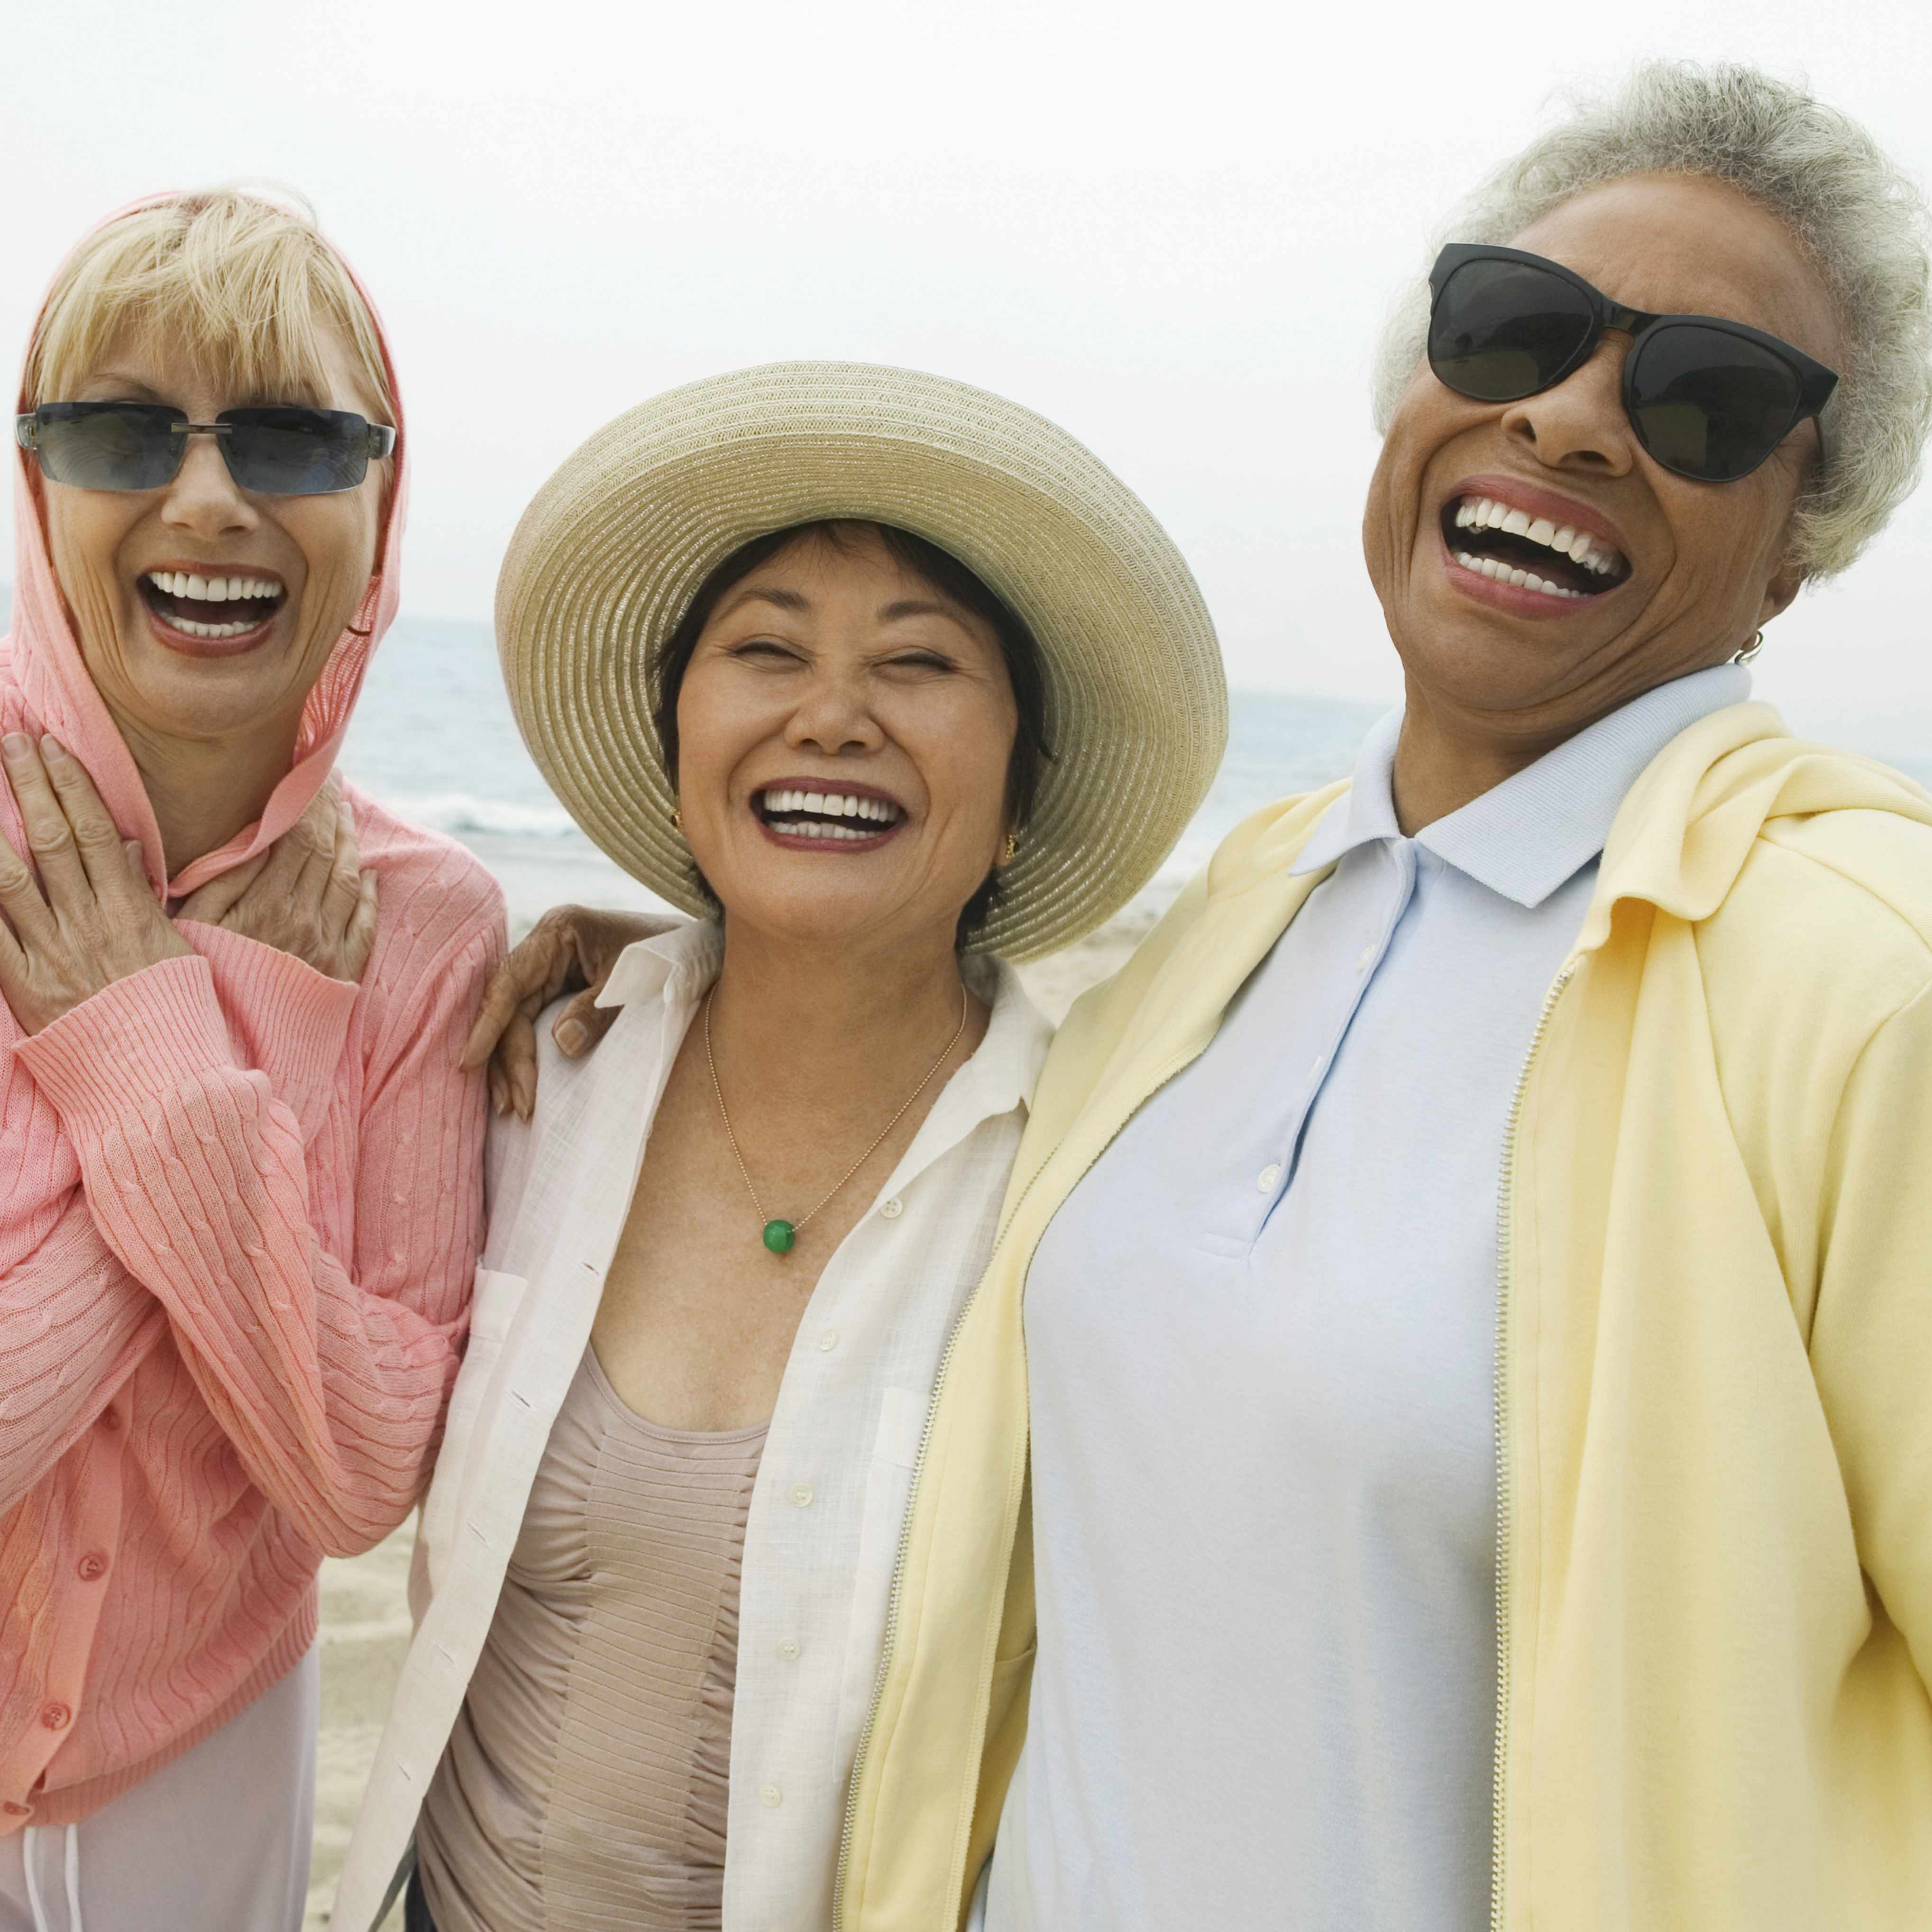 a group of diverse, middle-aged women friends walking on the beach and laughing